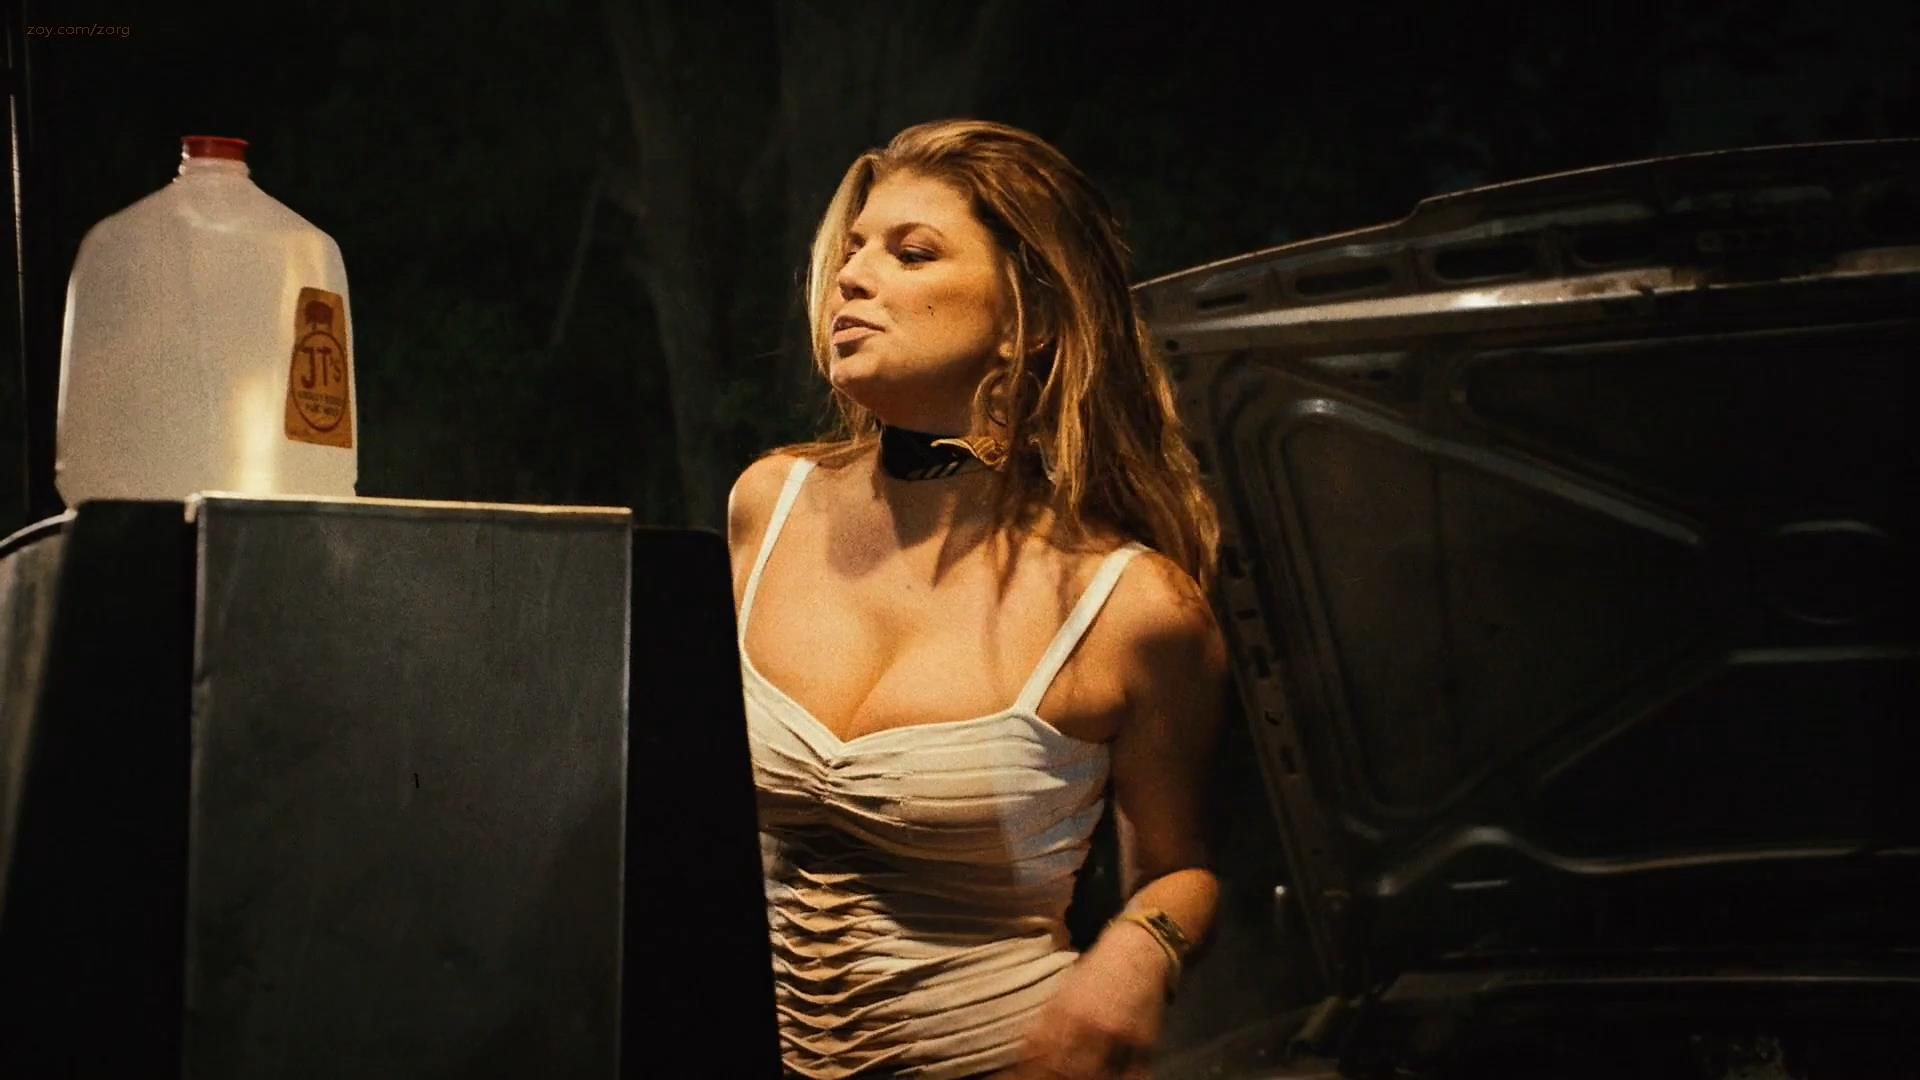 Finest Fergie Grindhouse Nude Pics Pictures